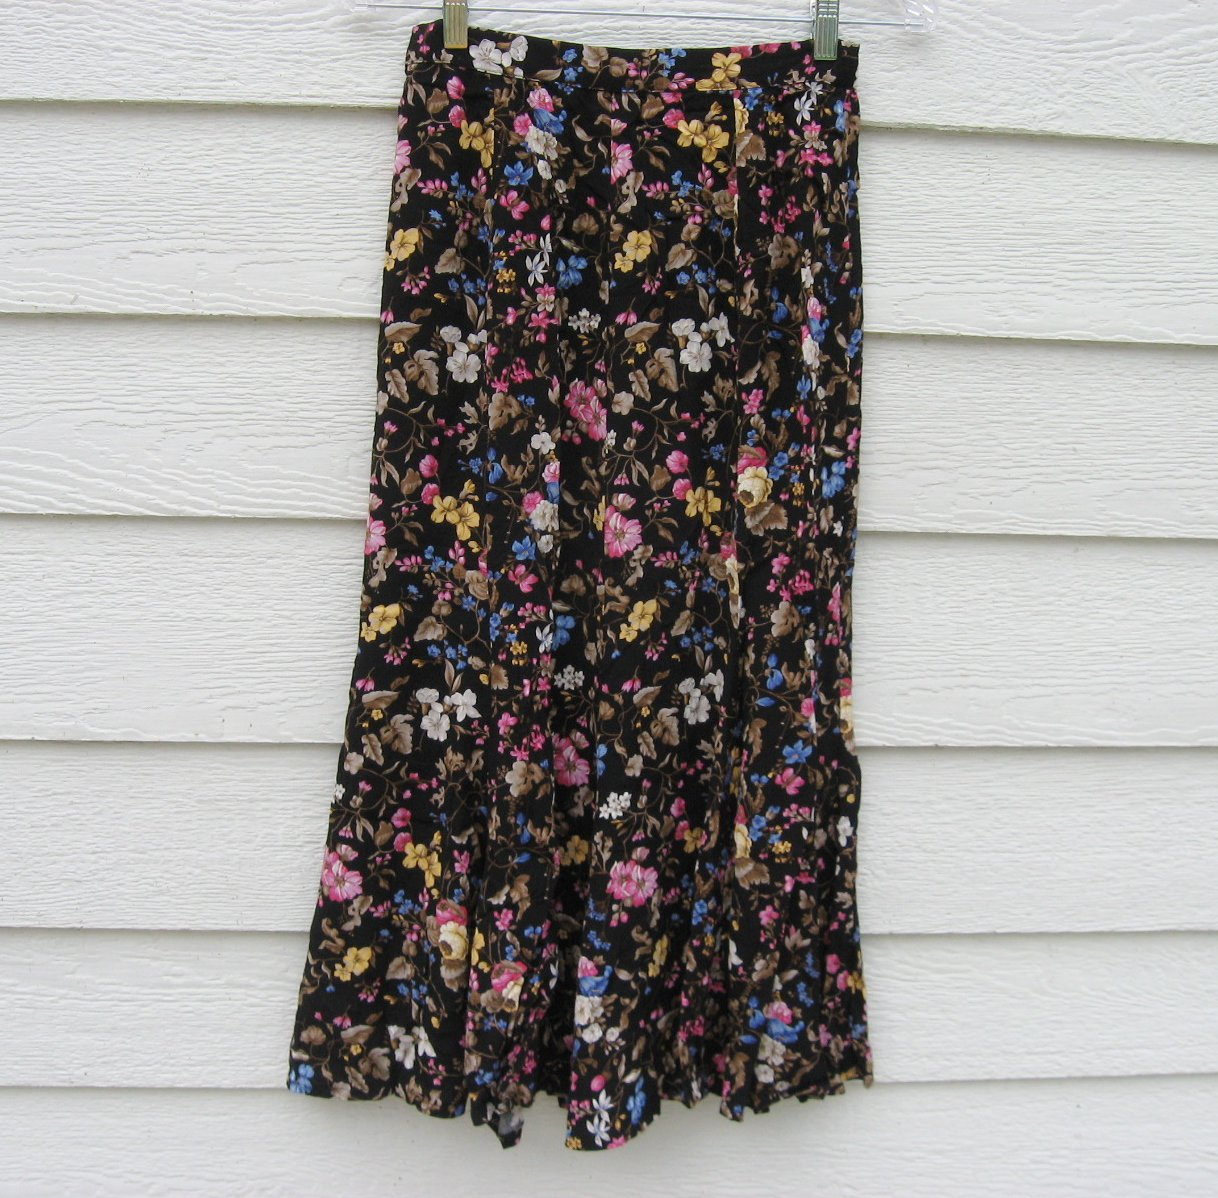 Liz Claiborne Skirt 26 Waist Black Floral Ankle Length